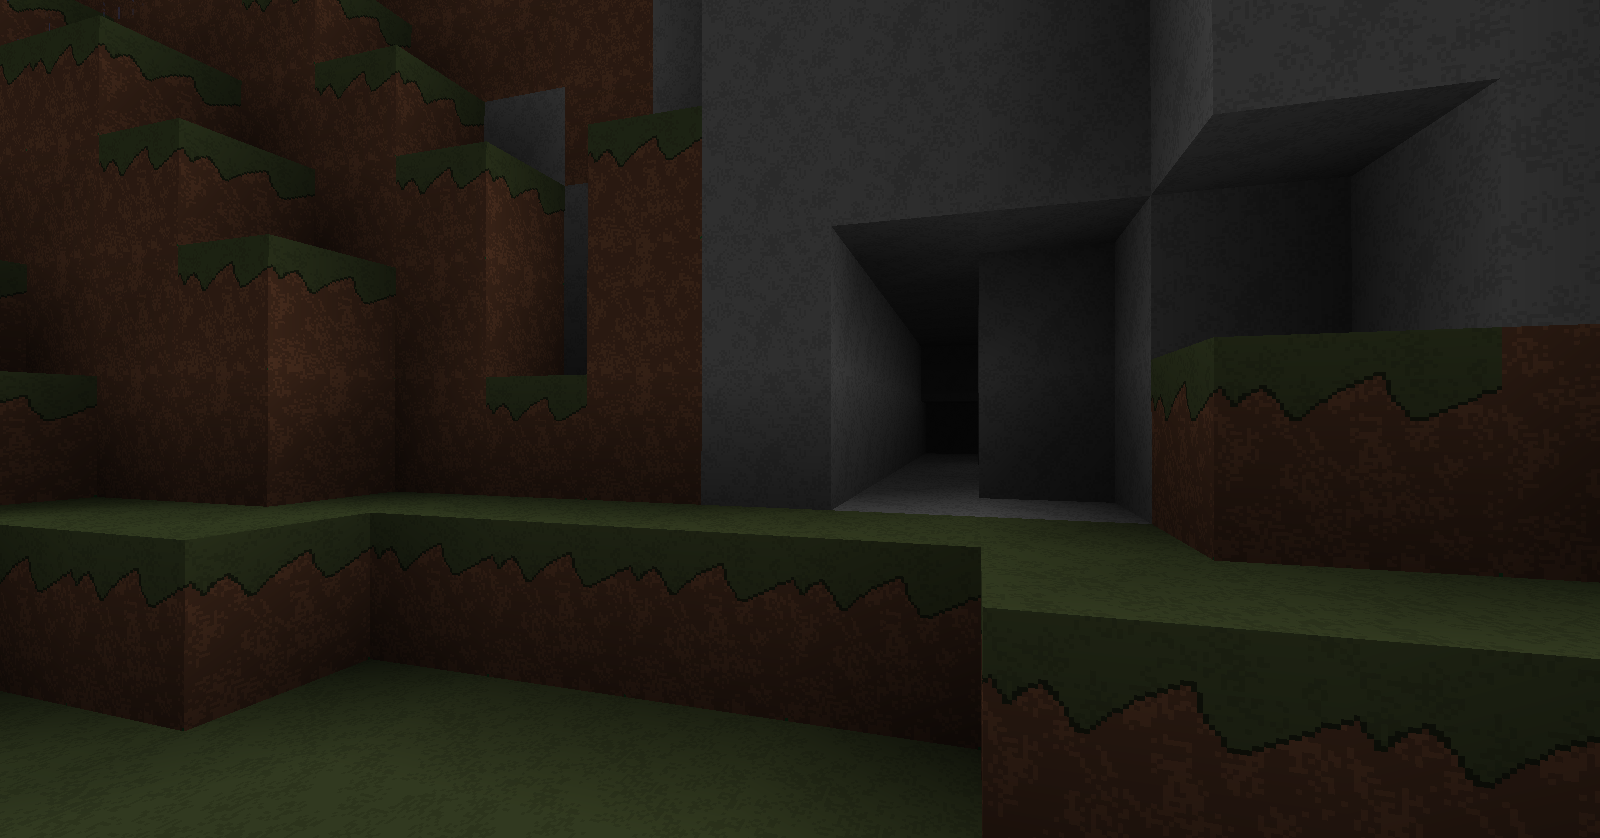 http://minecraft-forum.net/wp-content/uploads/2012/12/1ef92__Smoothcraft-texture-pack-1.png